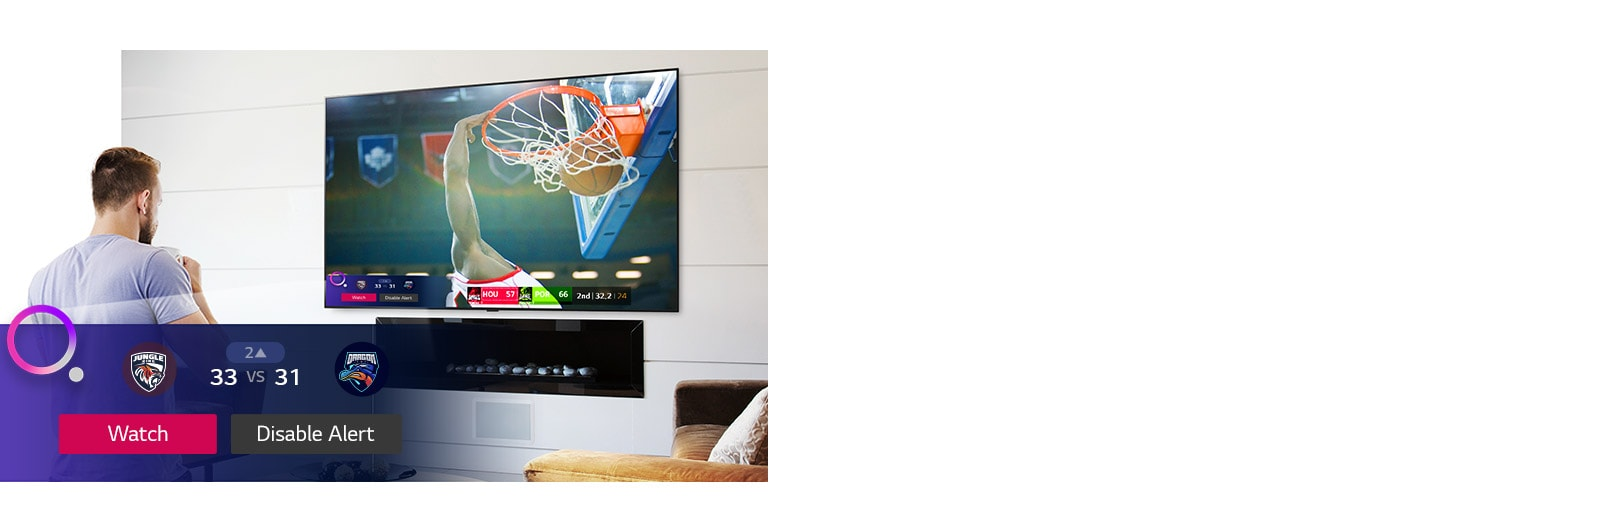 TV screen showing a scene from a basketball game with a Sports Alert